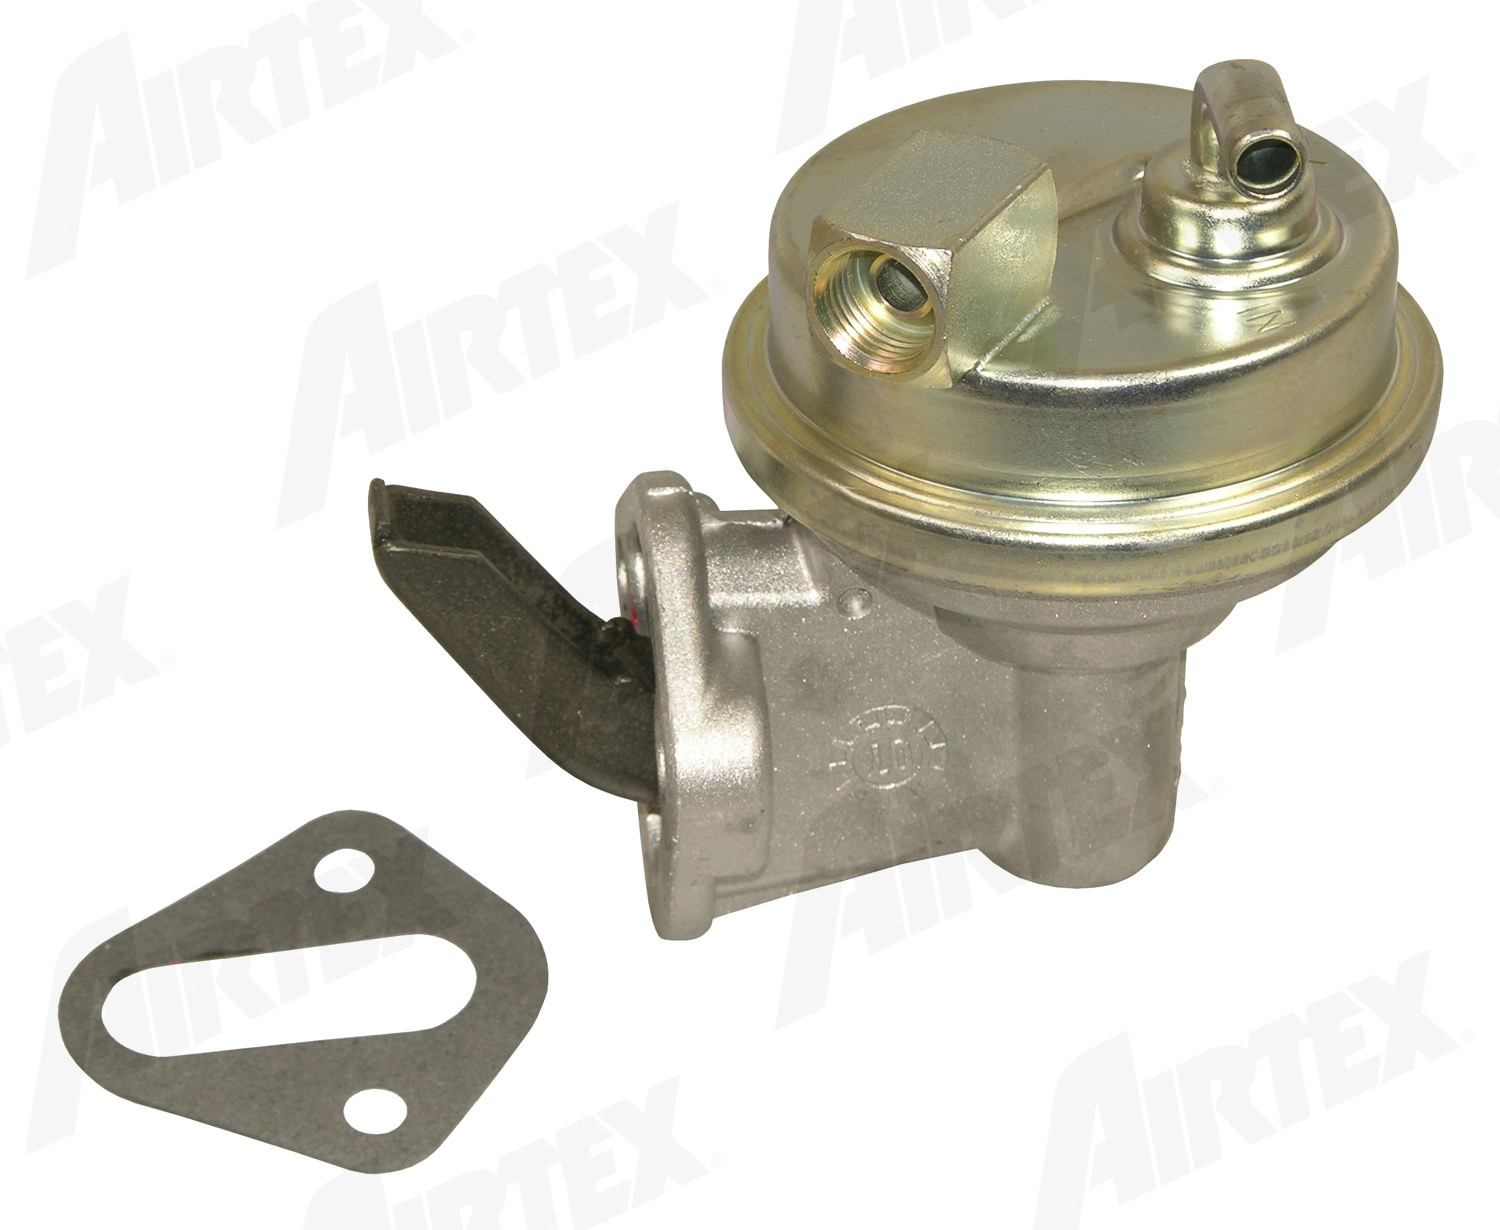 AIRTEX AUTOMOTIVE DIVISION - Mechanical Fuel Pump - ATN 41618